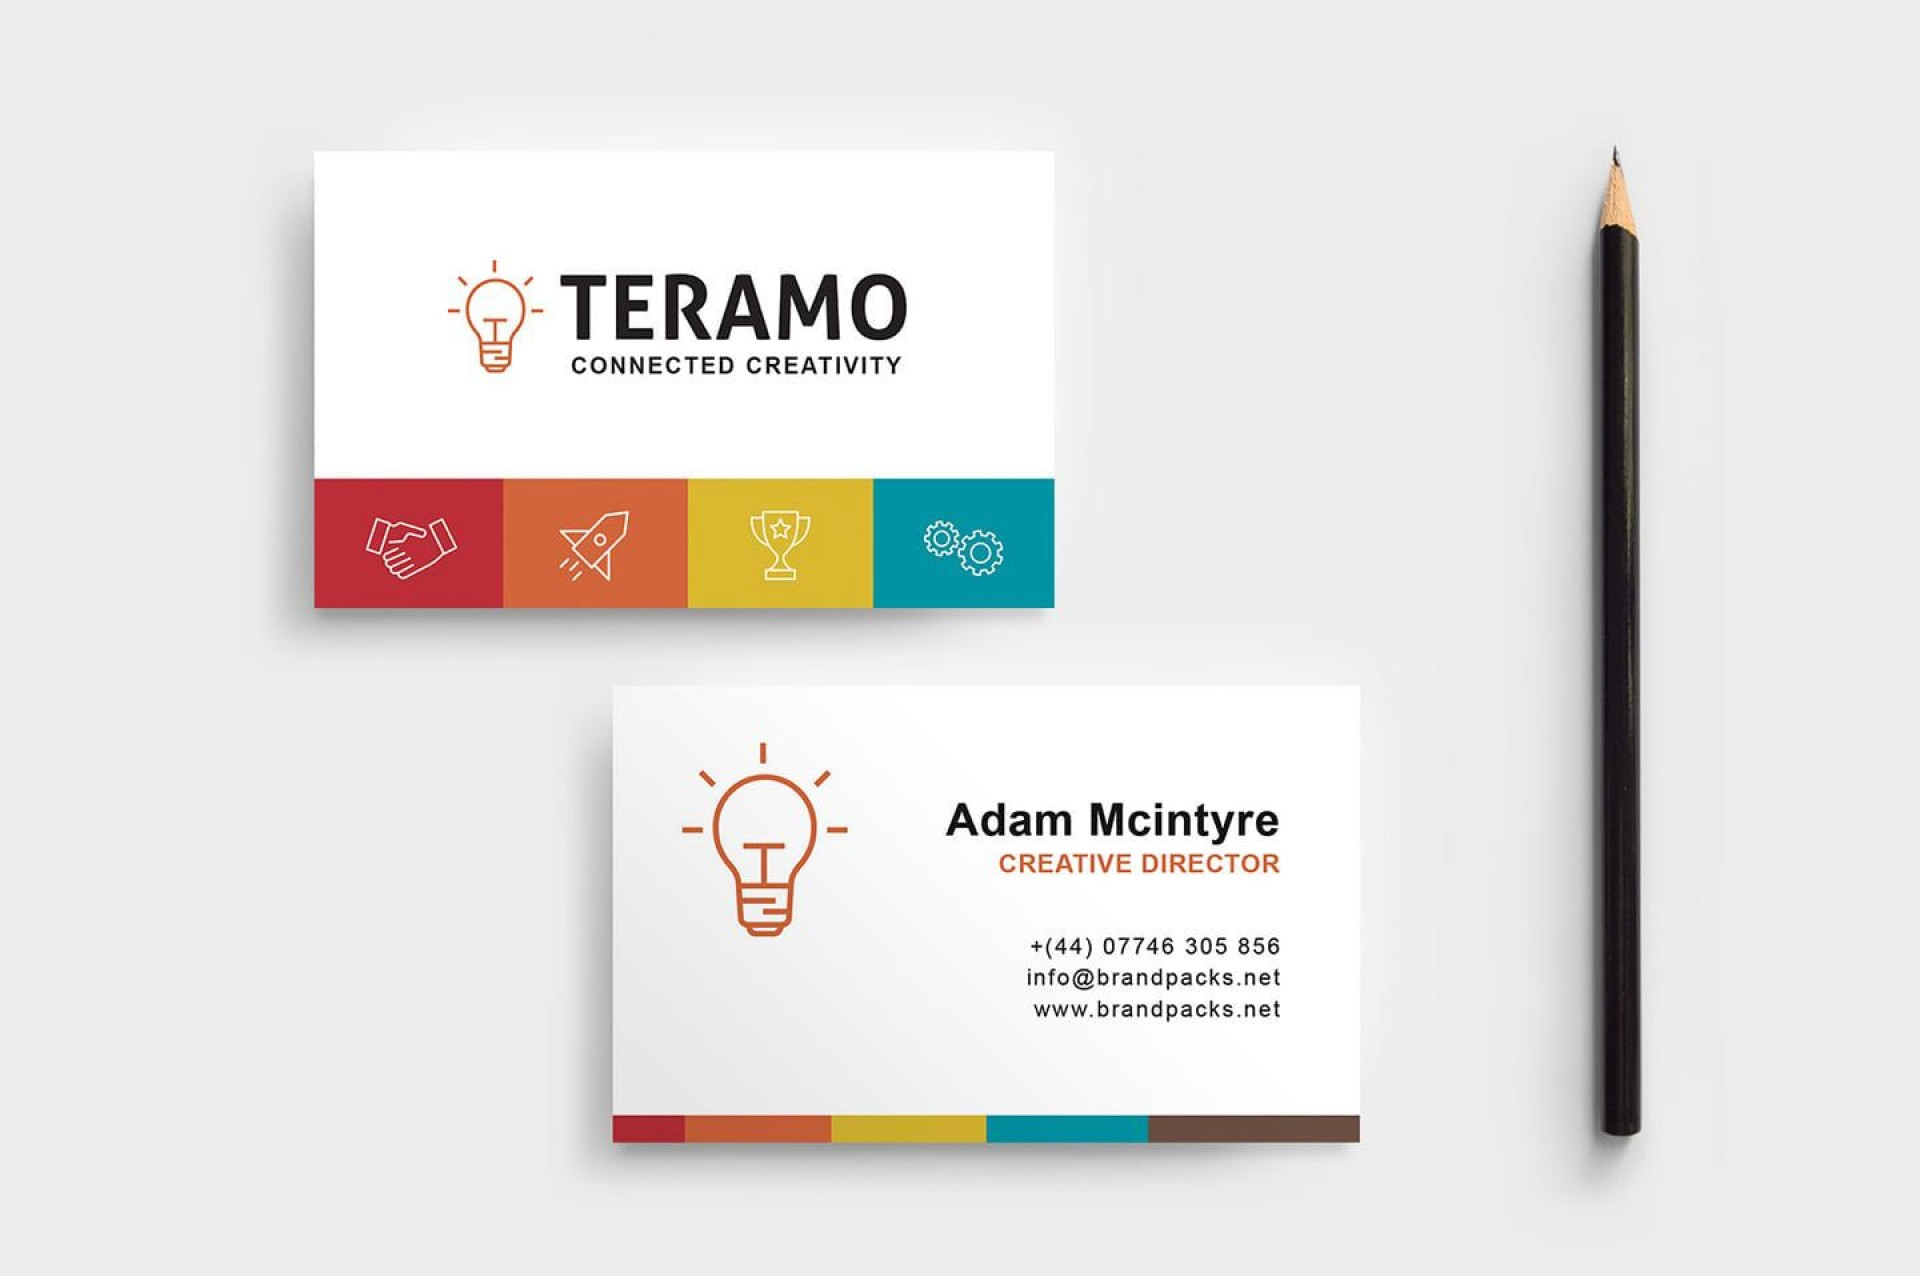 006 Stupendou Free Blank Busines Card Template Photoshop Highest Clarity  Download Psd1920